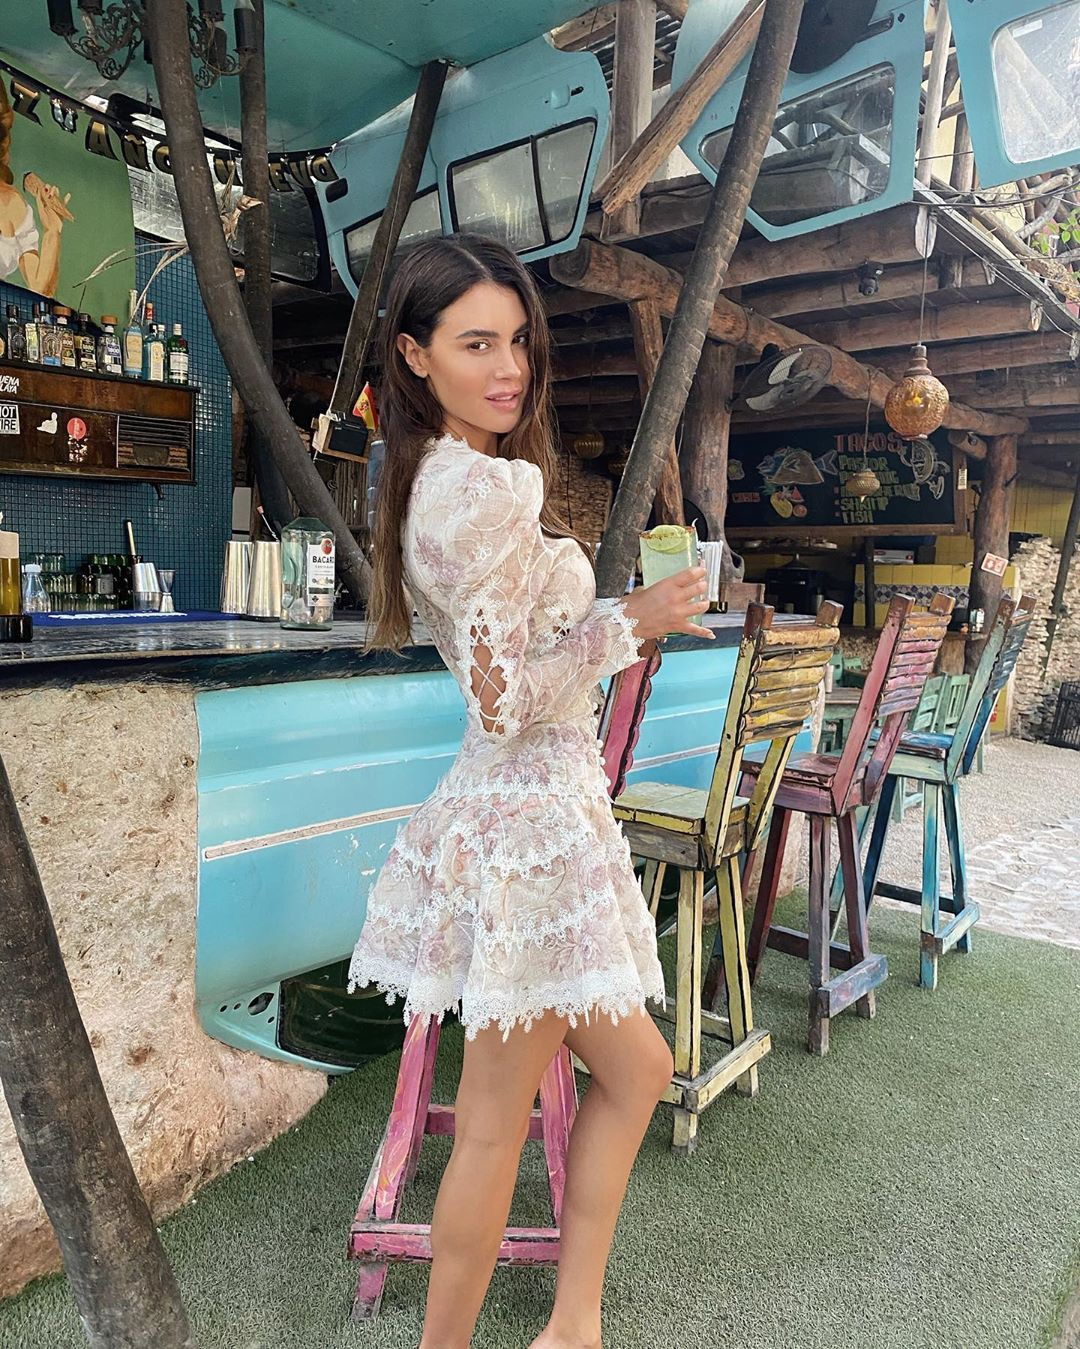 white outfits for girls with dress, cute girls photos, hot legs